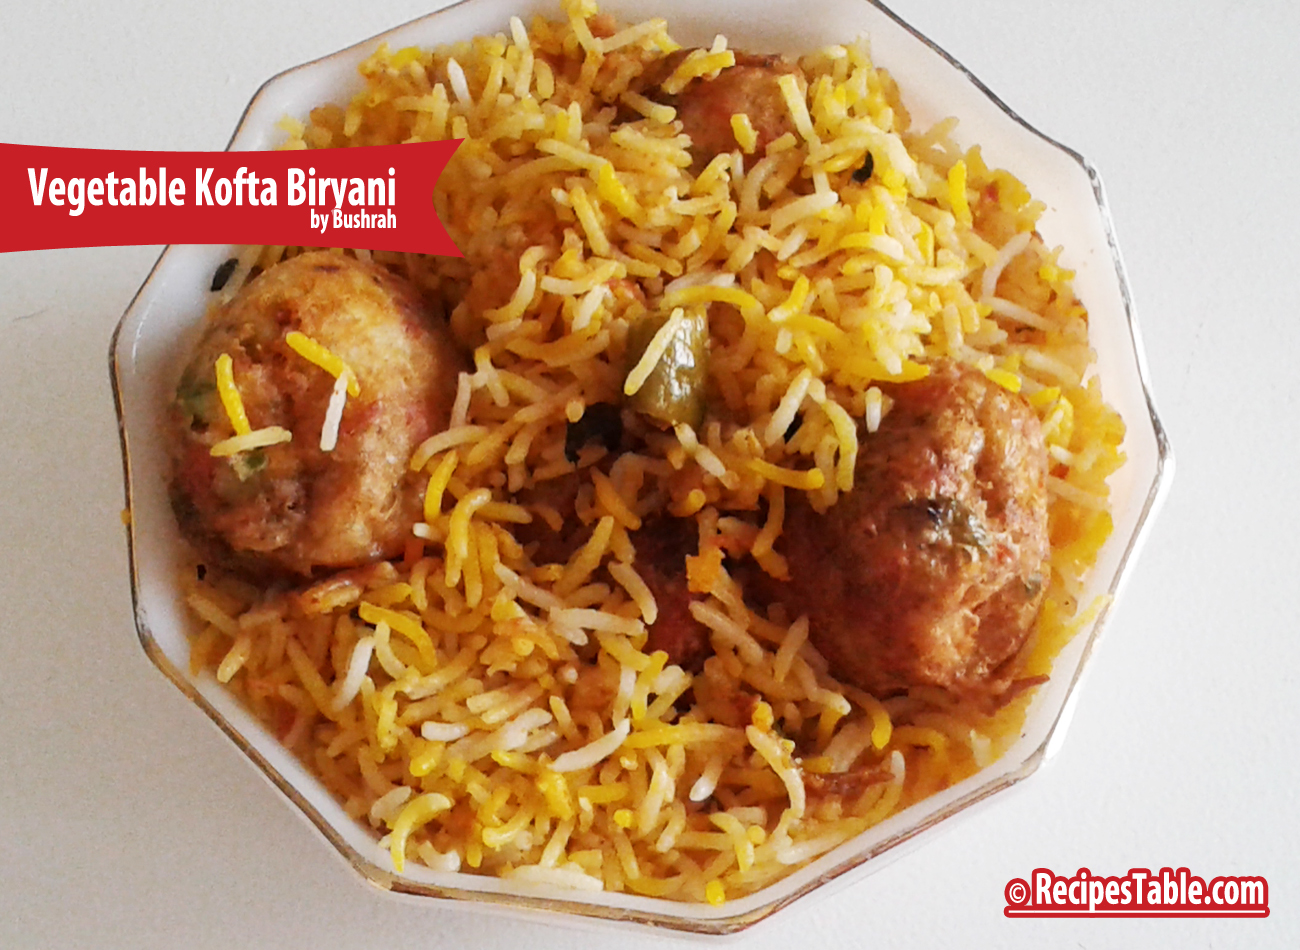 Vegetable Kofta Biryani Recipe